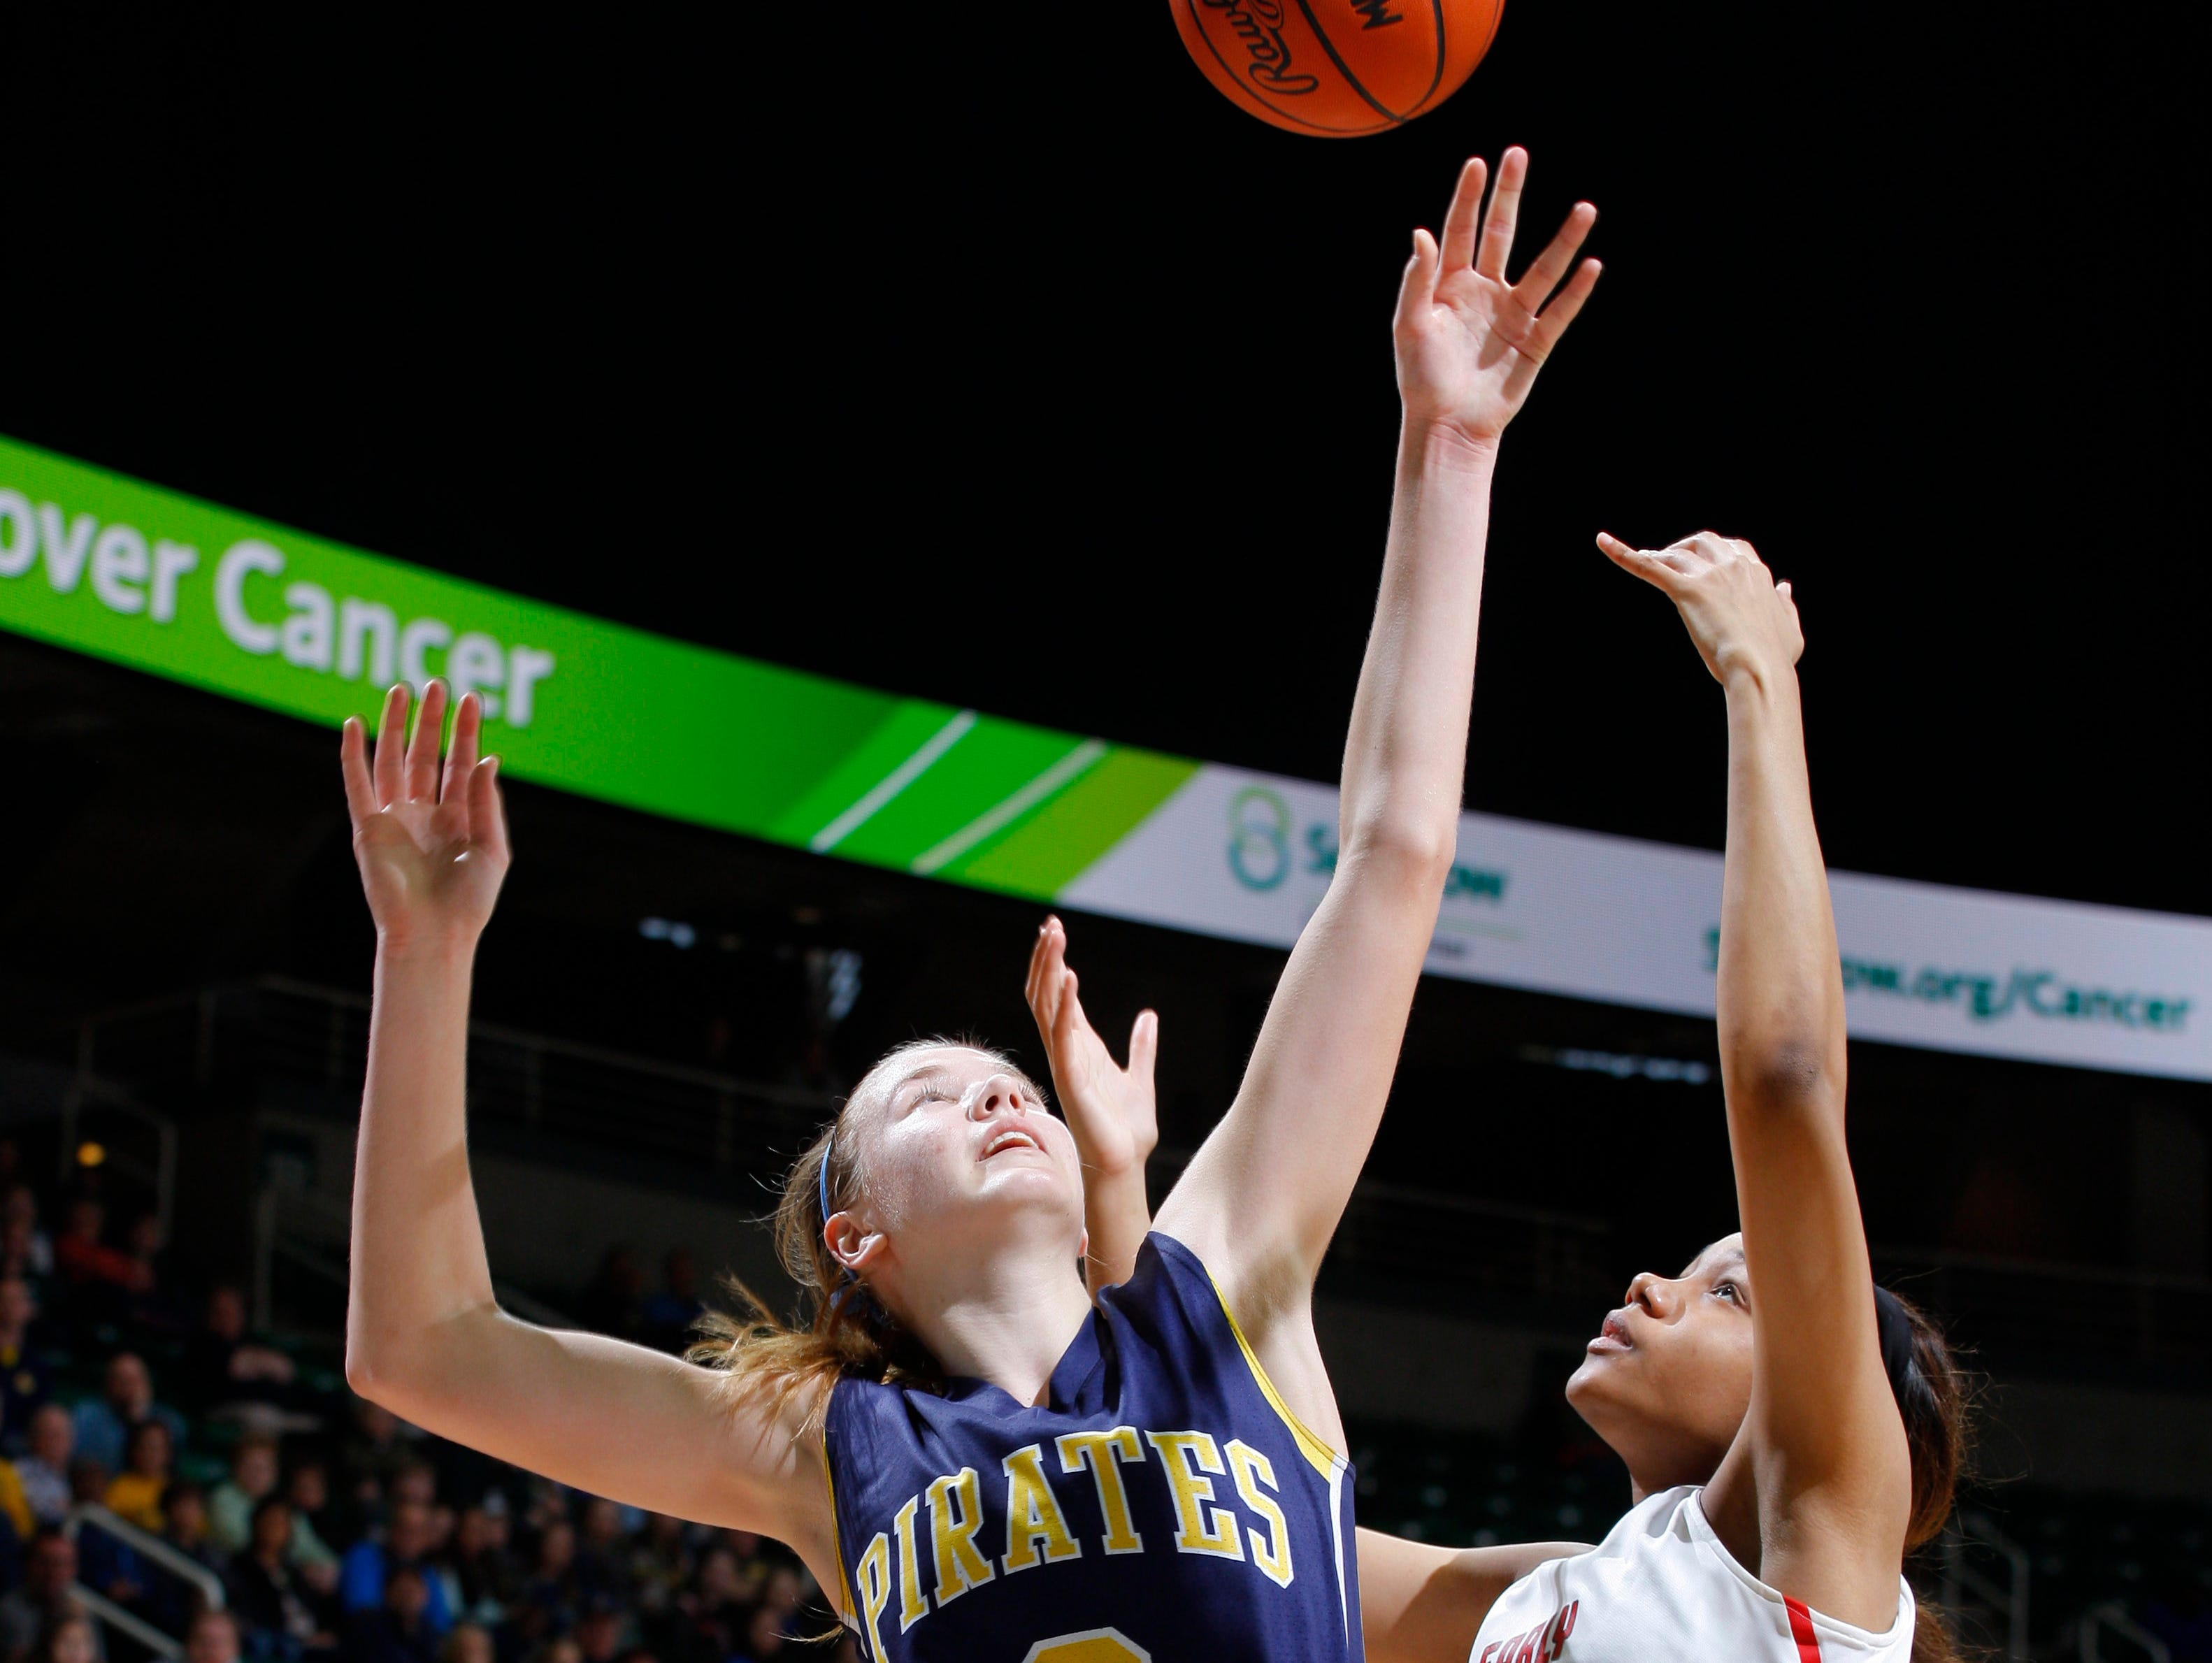 Pewamo-Westphalia's Hannah Spitzley (3) puts up a shot and gets fouled by Detroit Edison's Ashley Primas (15) during their MHSAA Class C championship game, Saturday, March 18, 2017, in East Lansing, Mich. P-W fell 46-44.